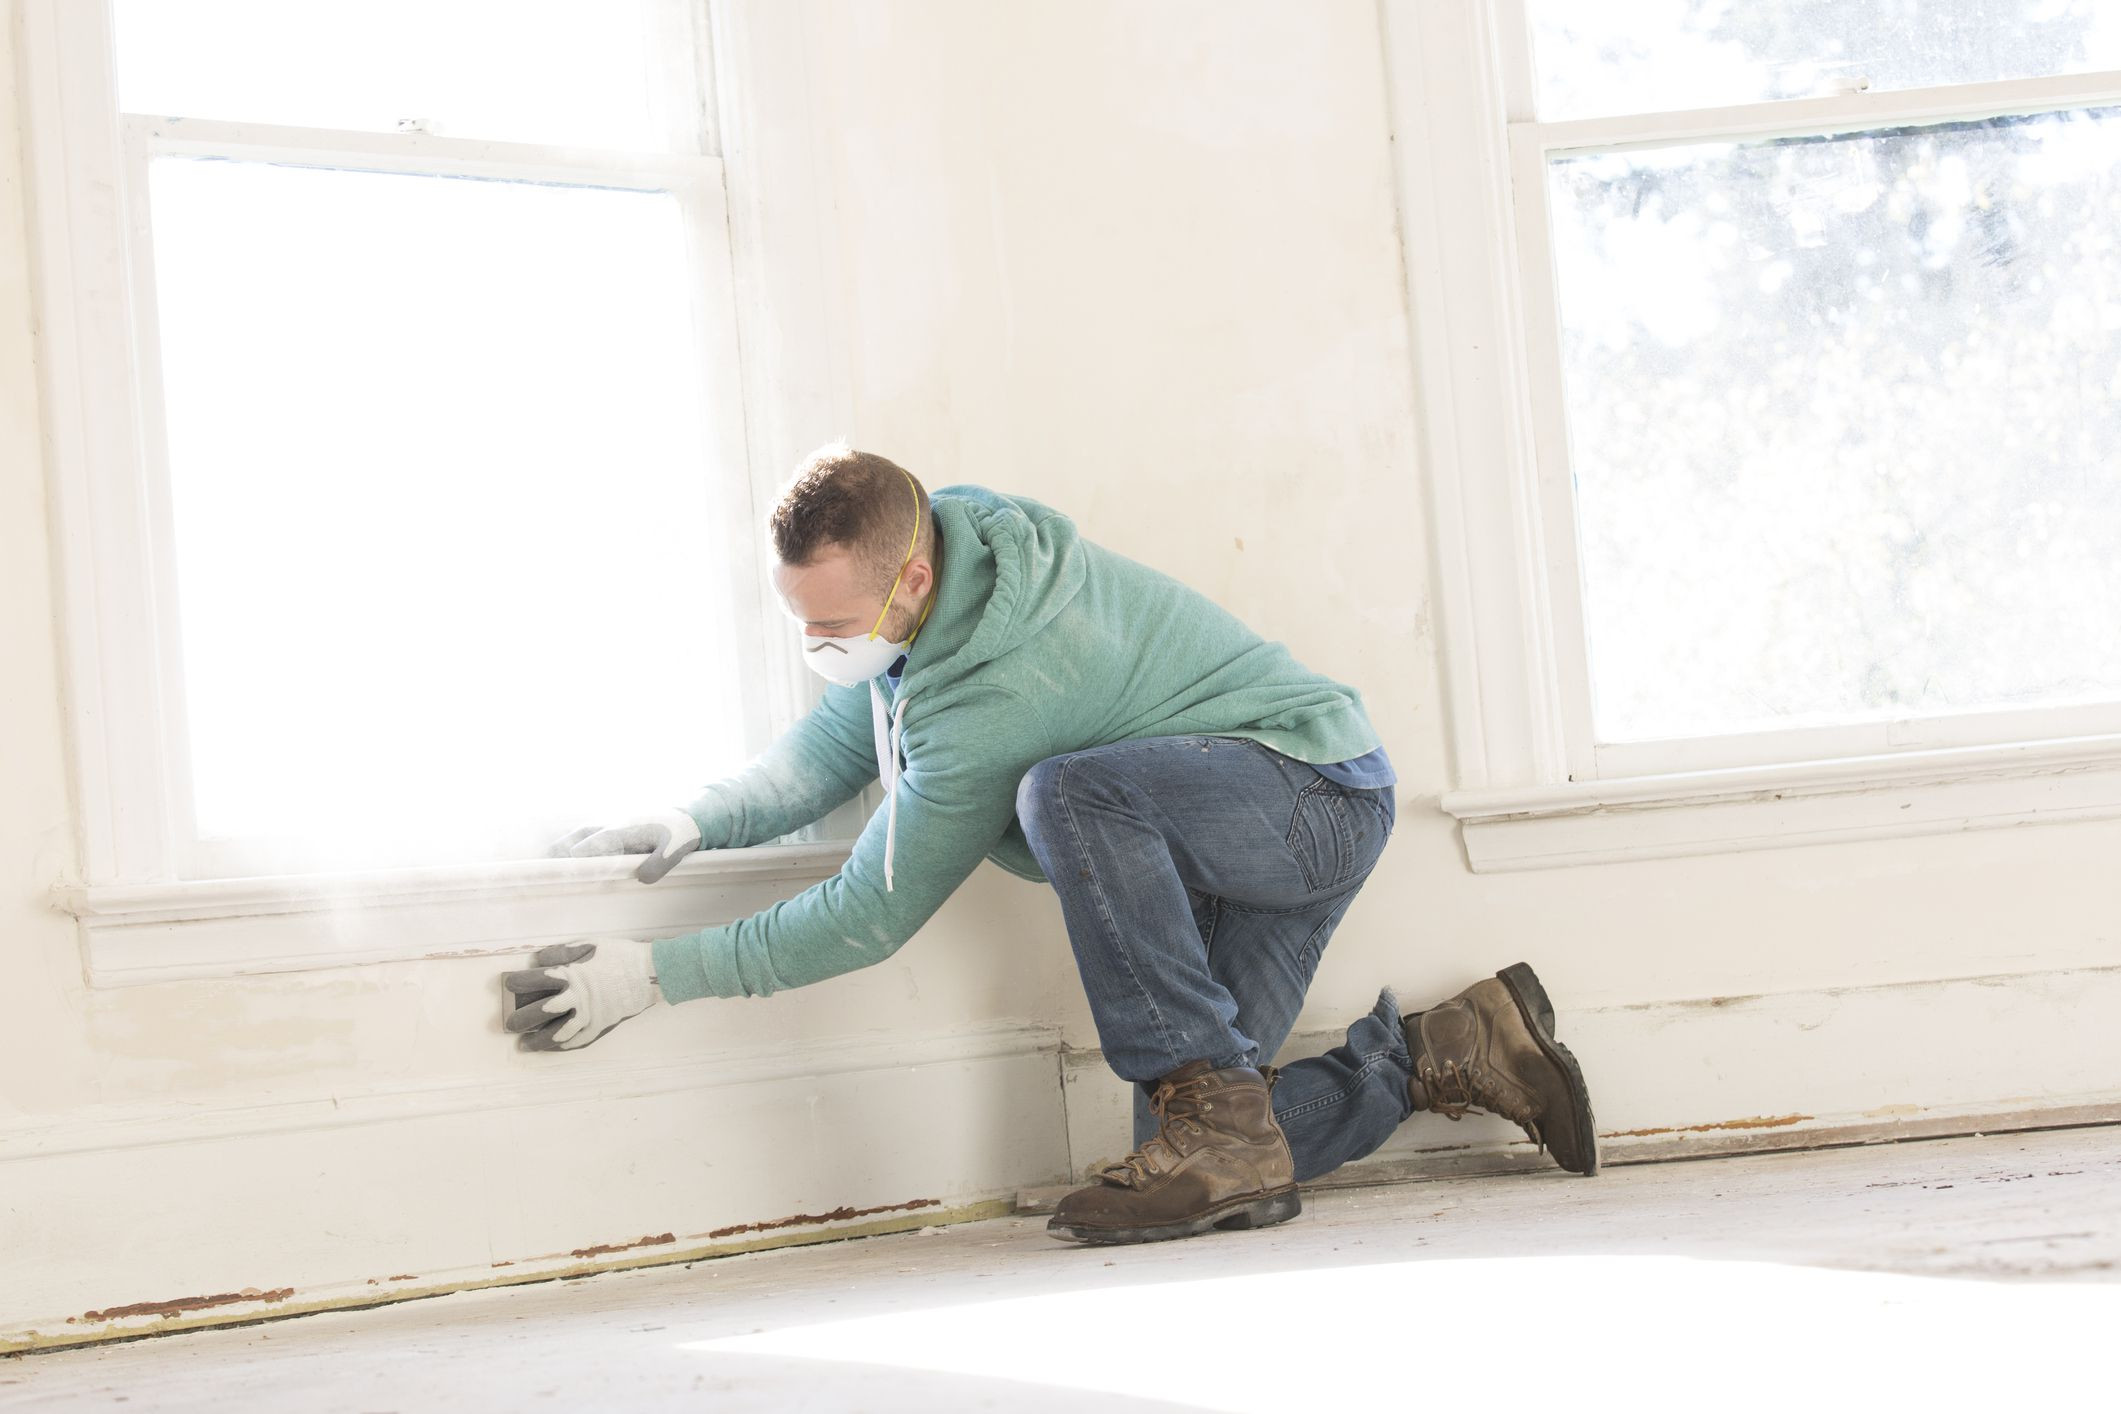 hardwood floor refinishing greensburg pa of should you clean walls before painting intended for man cleaning wall gettyimages 543194649 5891faa85f9b5874ee8f0e69